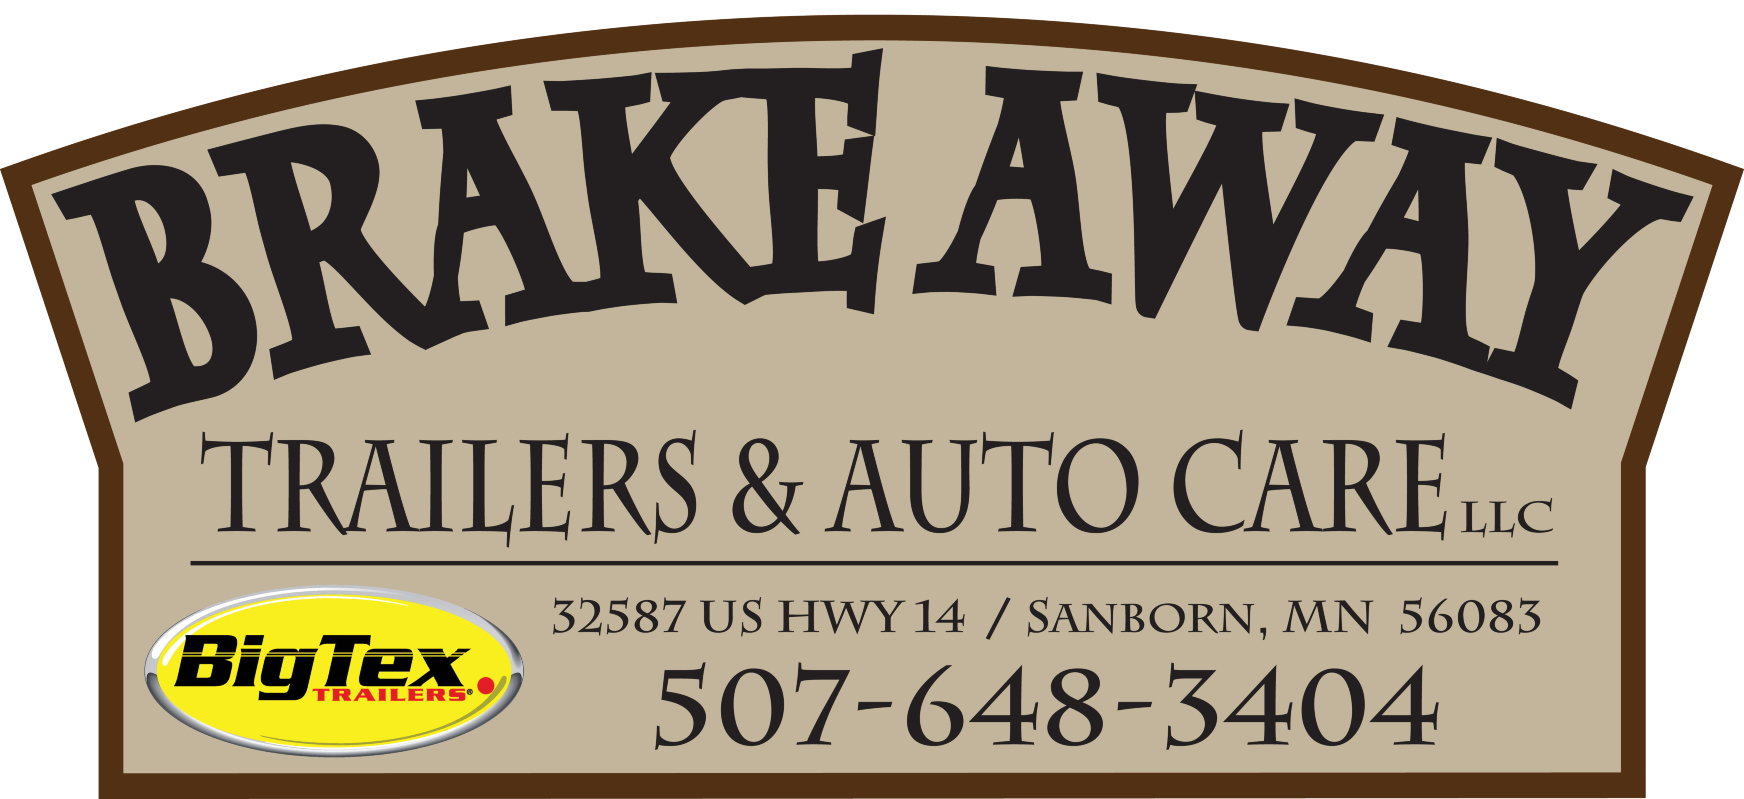 Brake Away Trailers & Auto Care, LLC